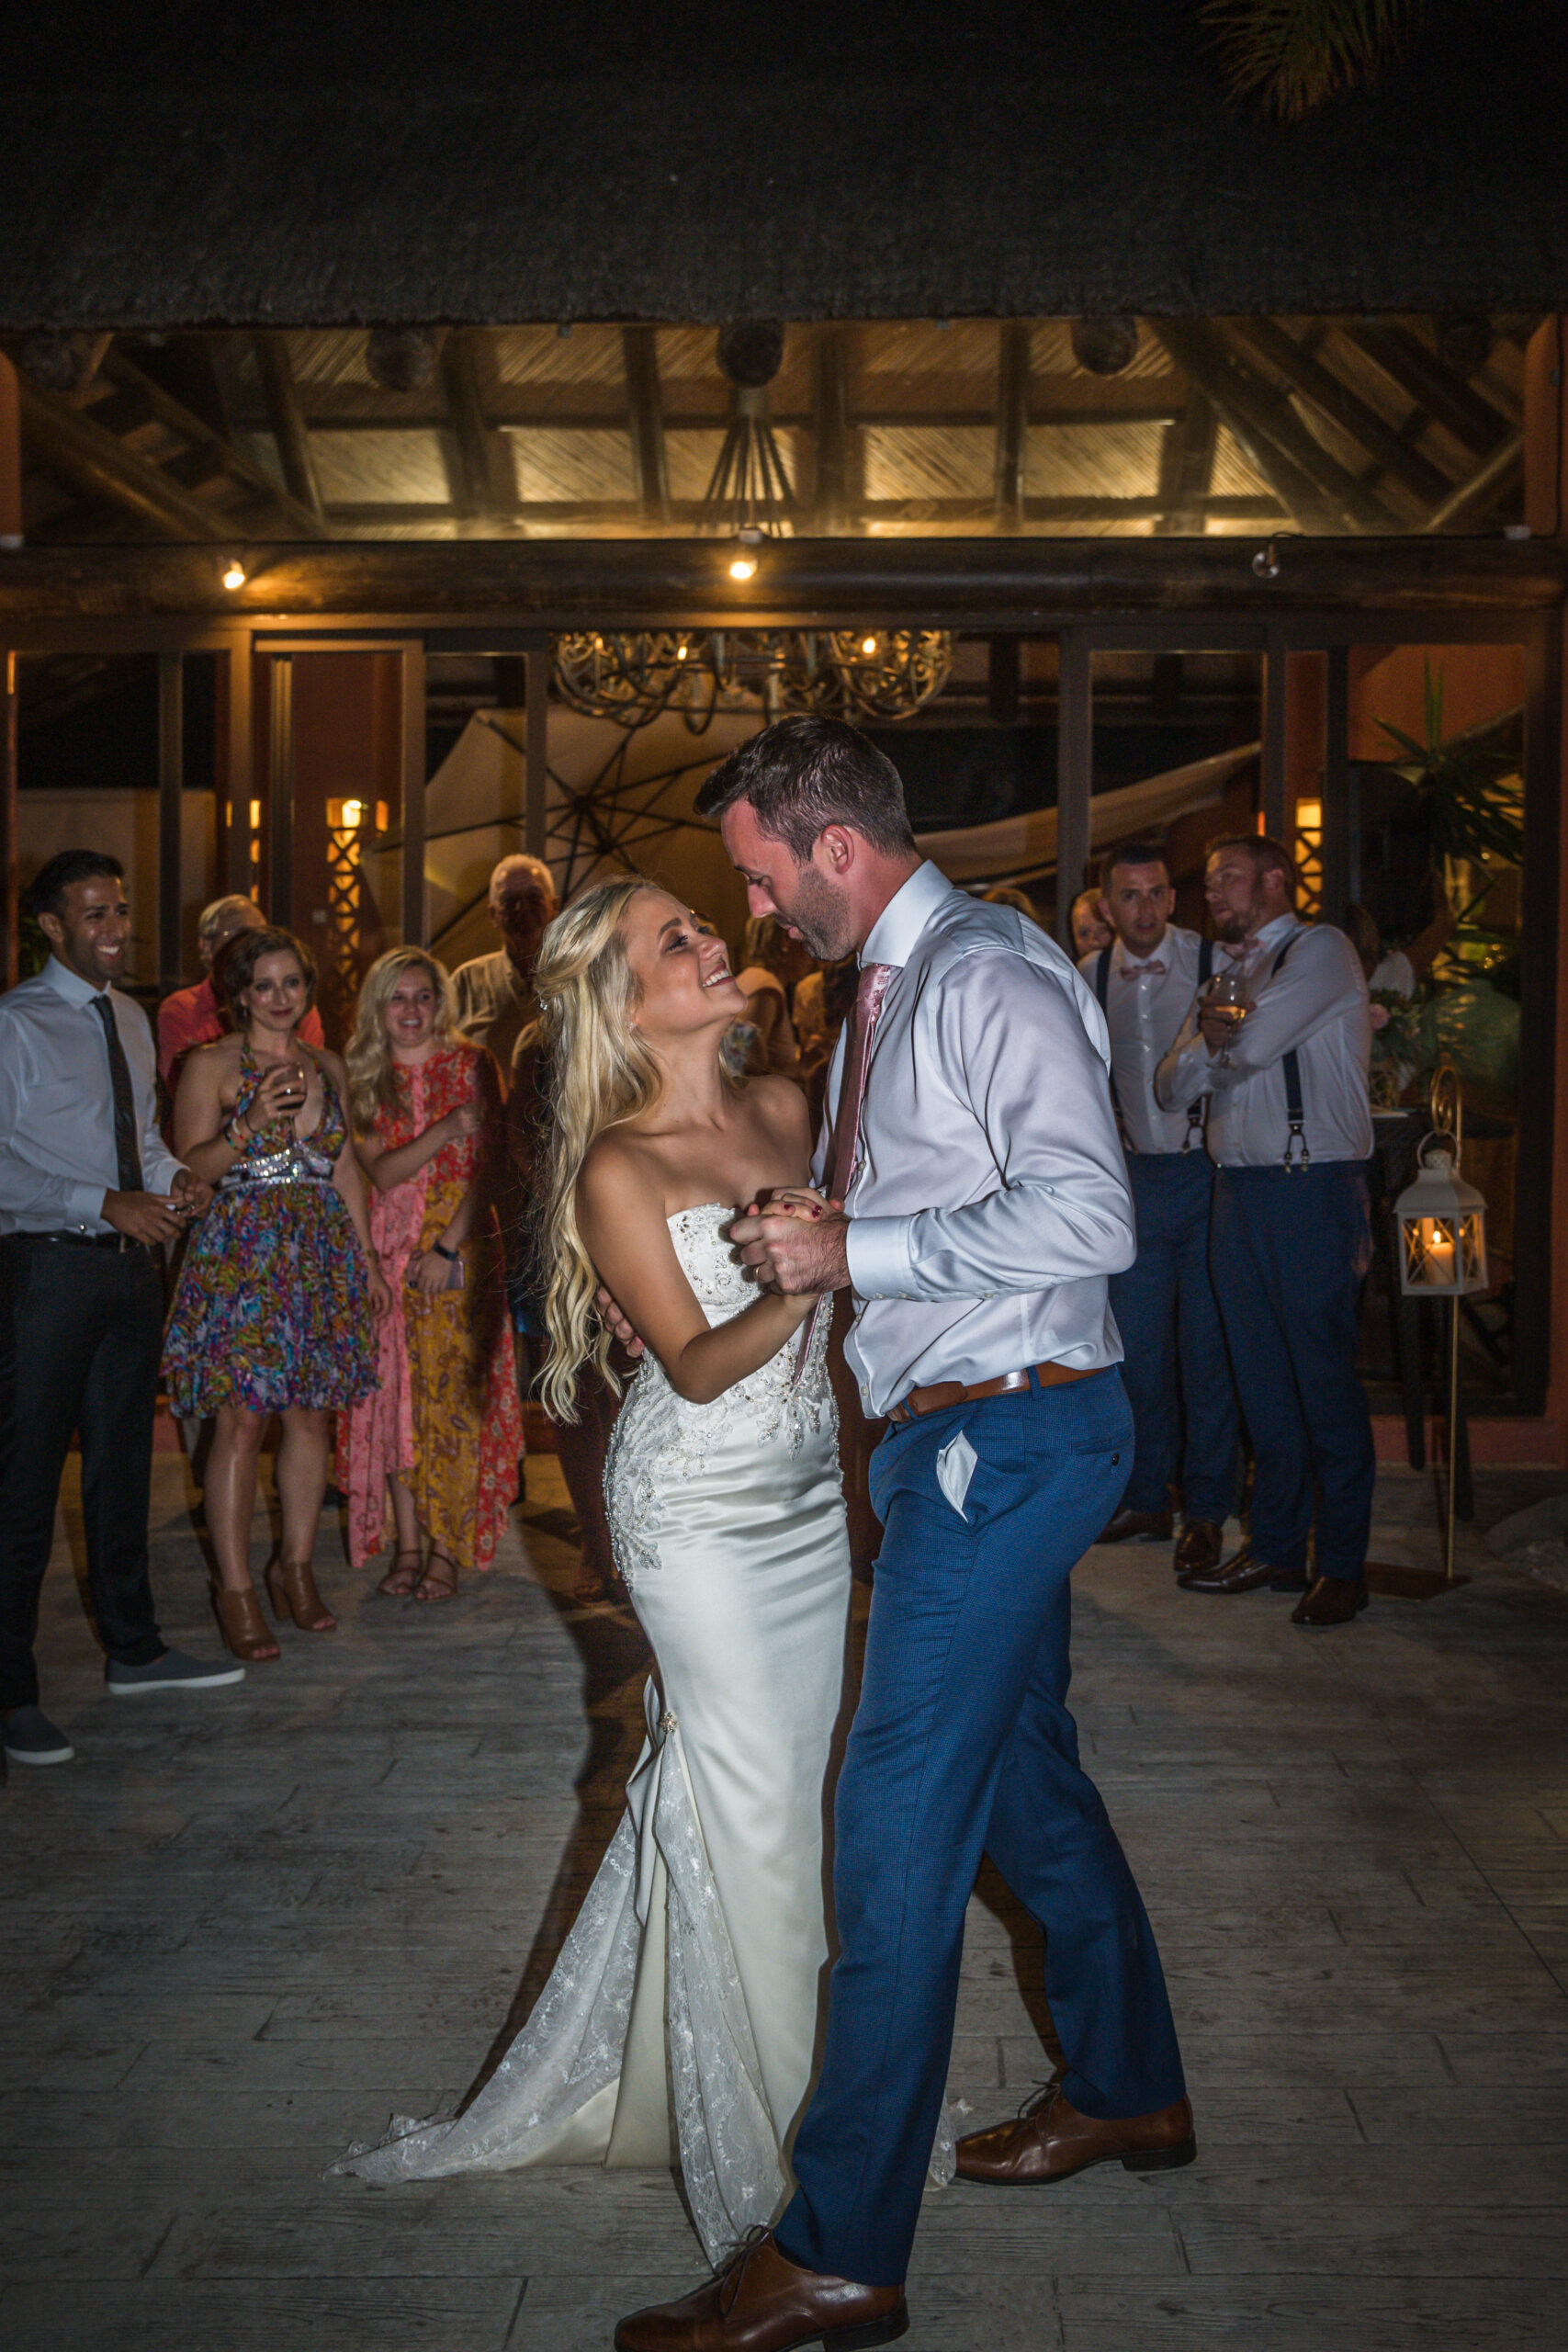 The bride and groom dance the night away - Rebecca Davidson Photography